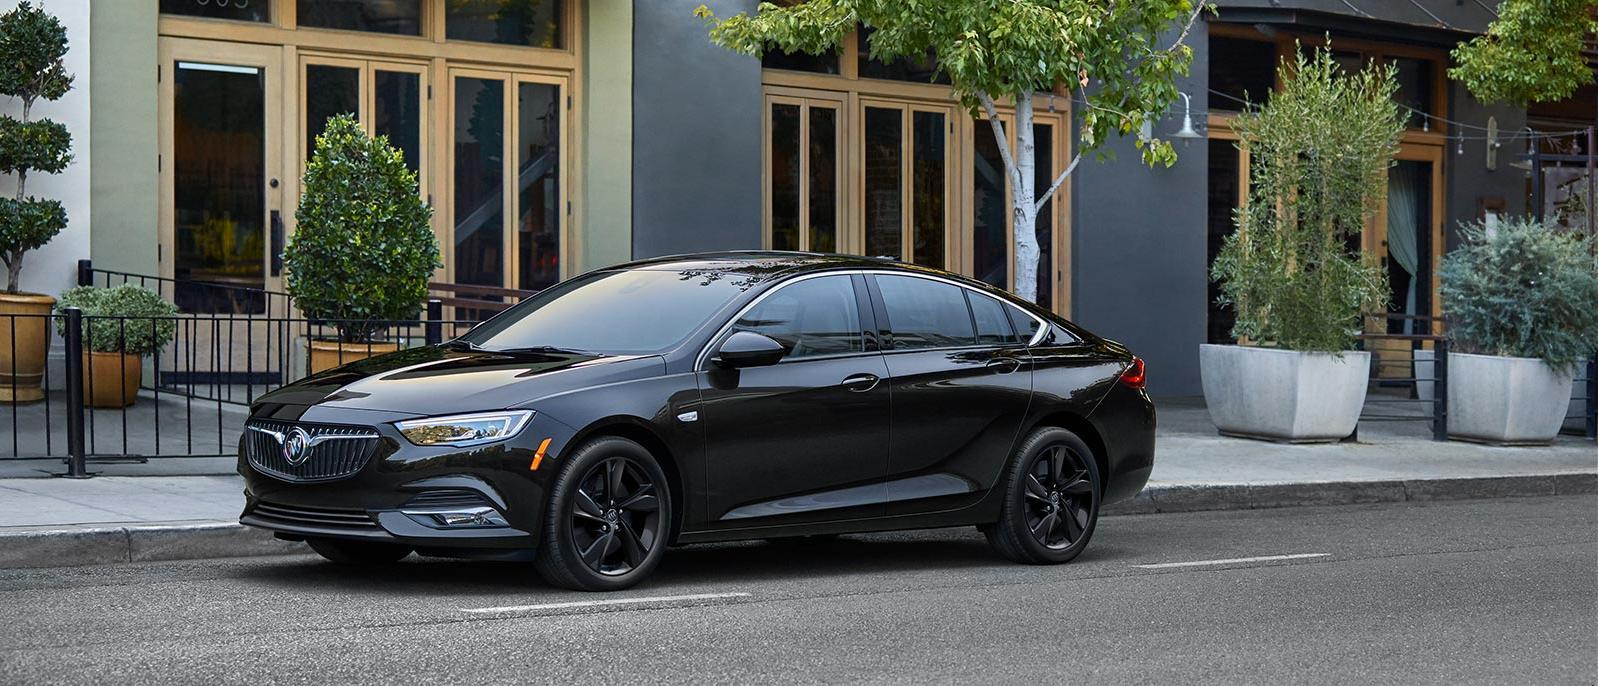 Griffin Price 2022 Buick Regal Sportback Horsepower, Inventory, Lease